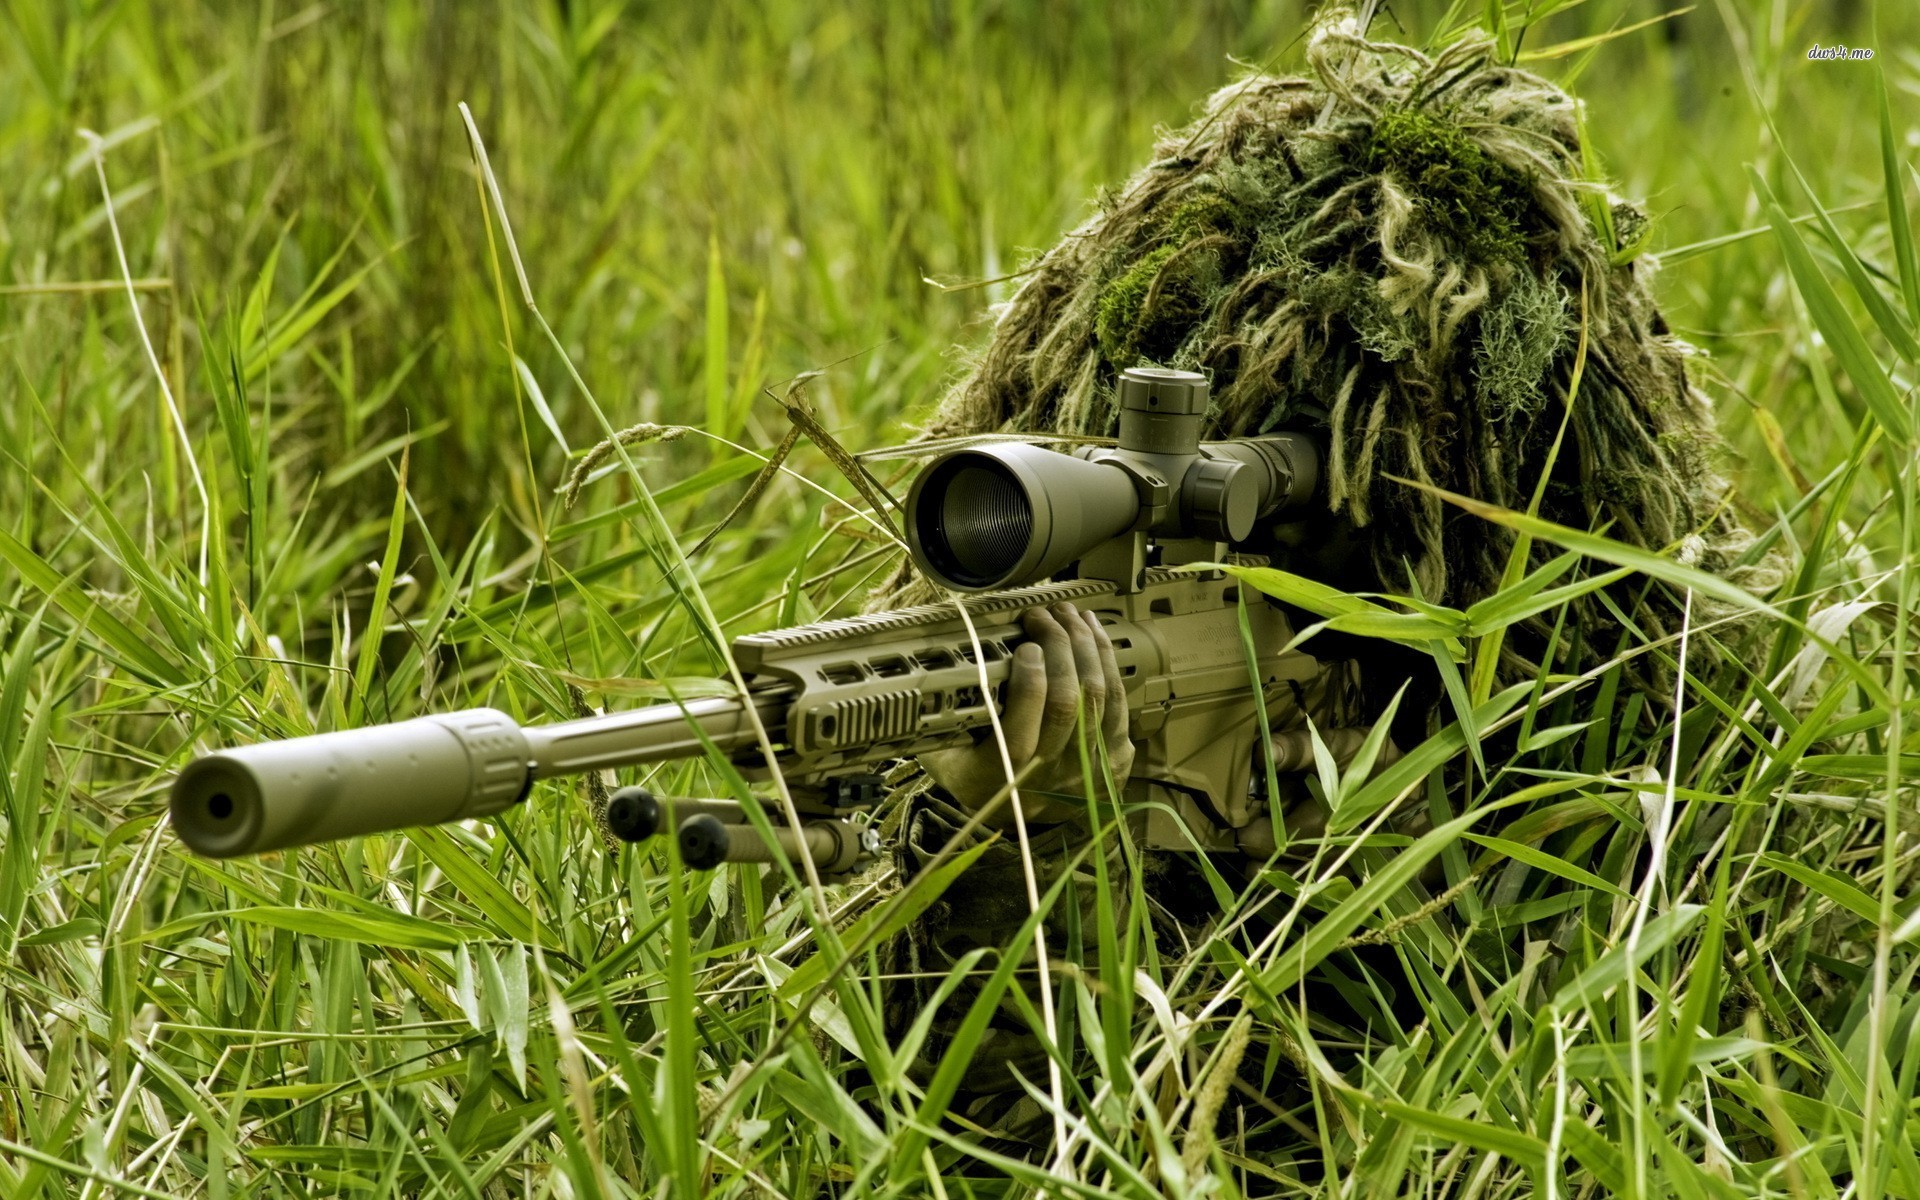 Snipers hd wallpapers